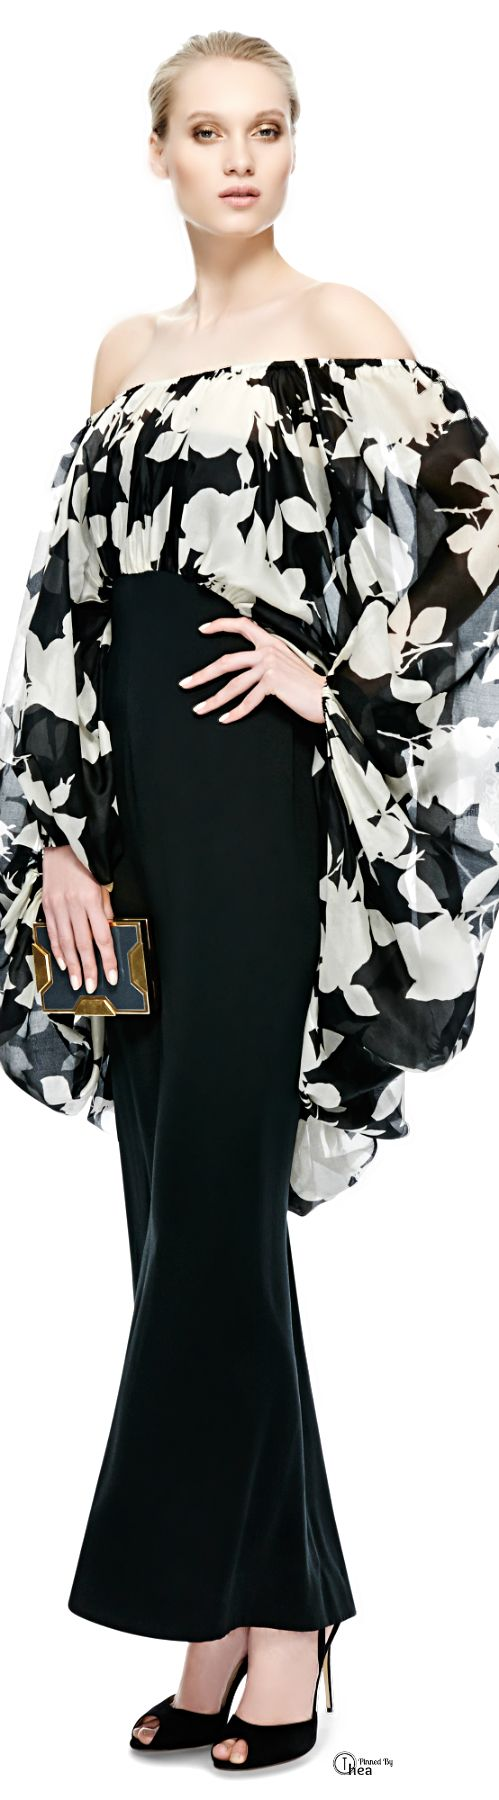 YSL ● Black And White Print Organza Gown